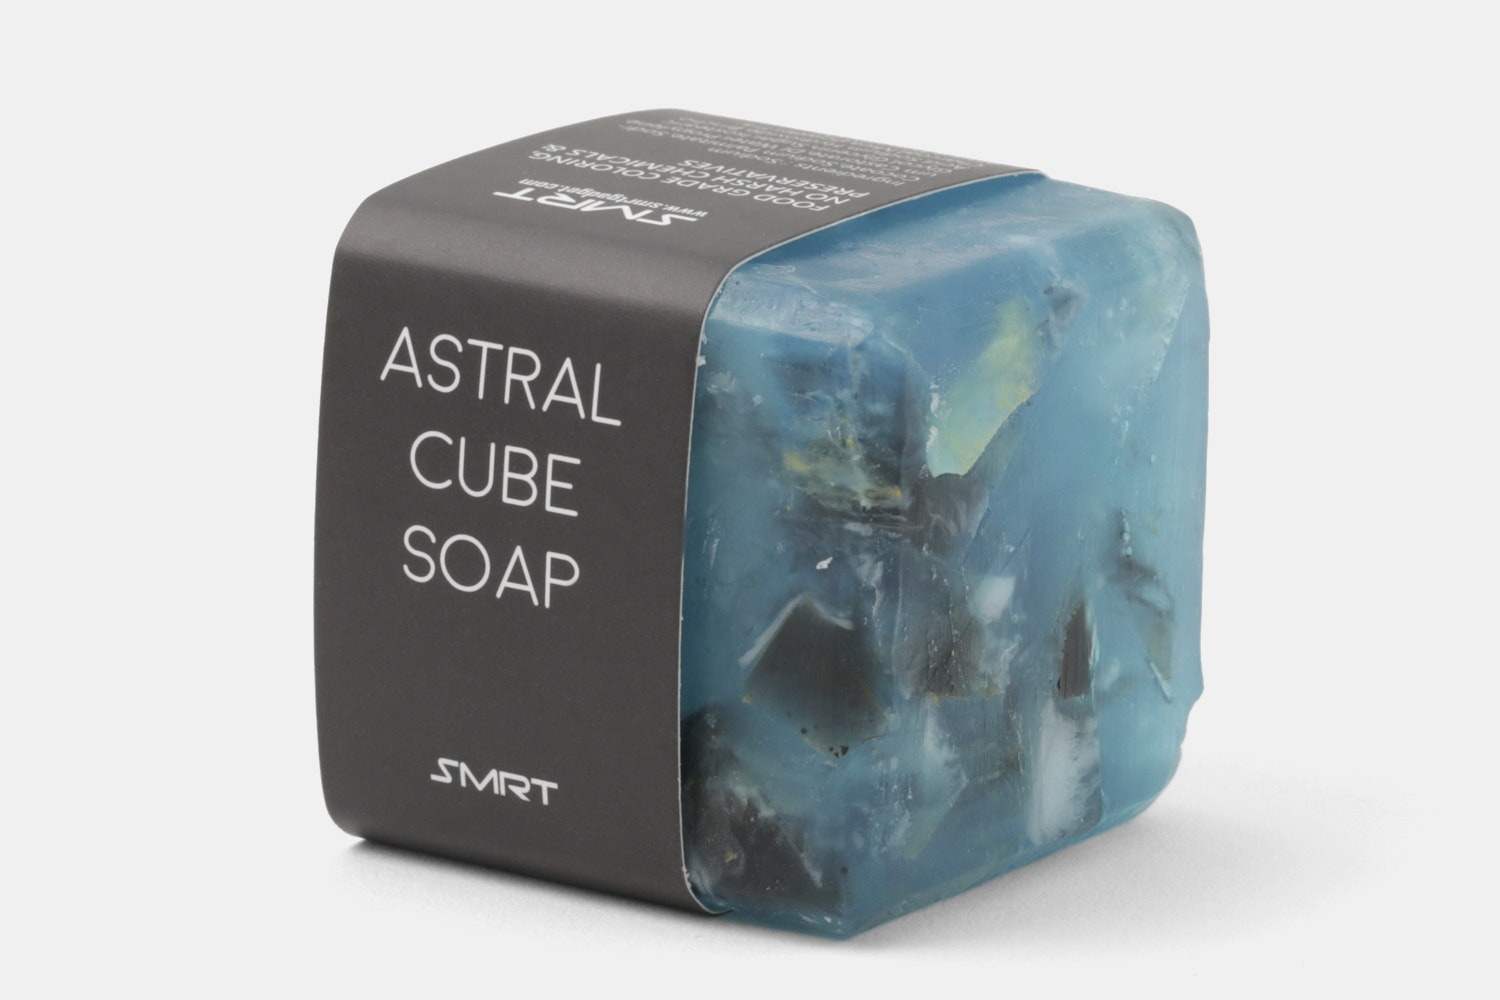 100g Astral Cube - Blurple (- $5)